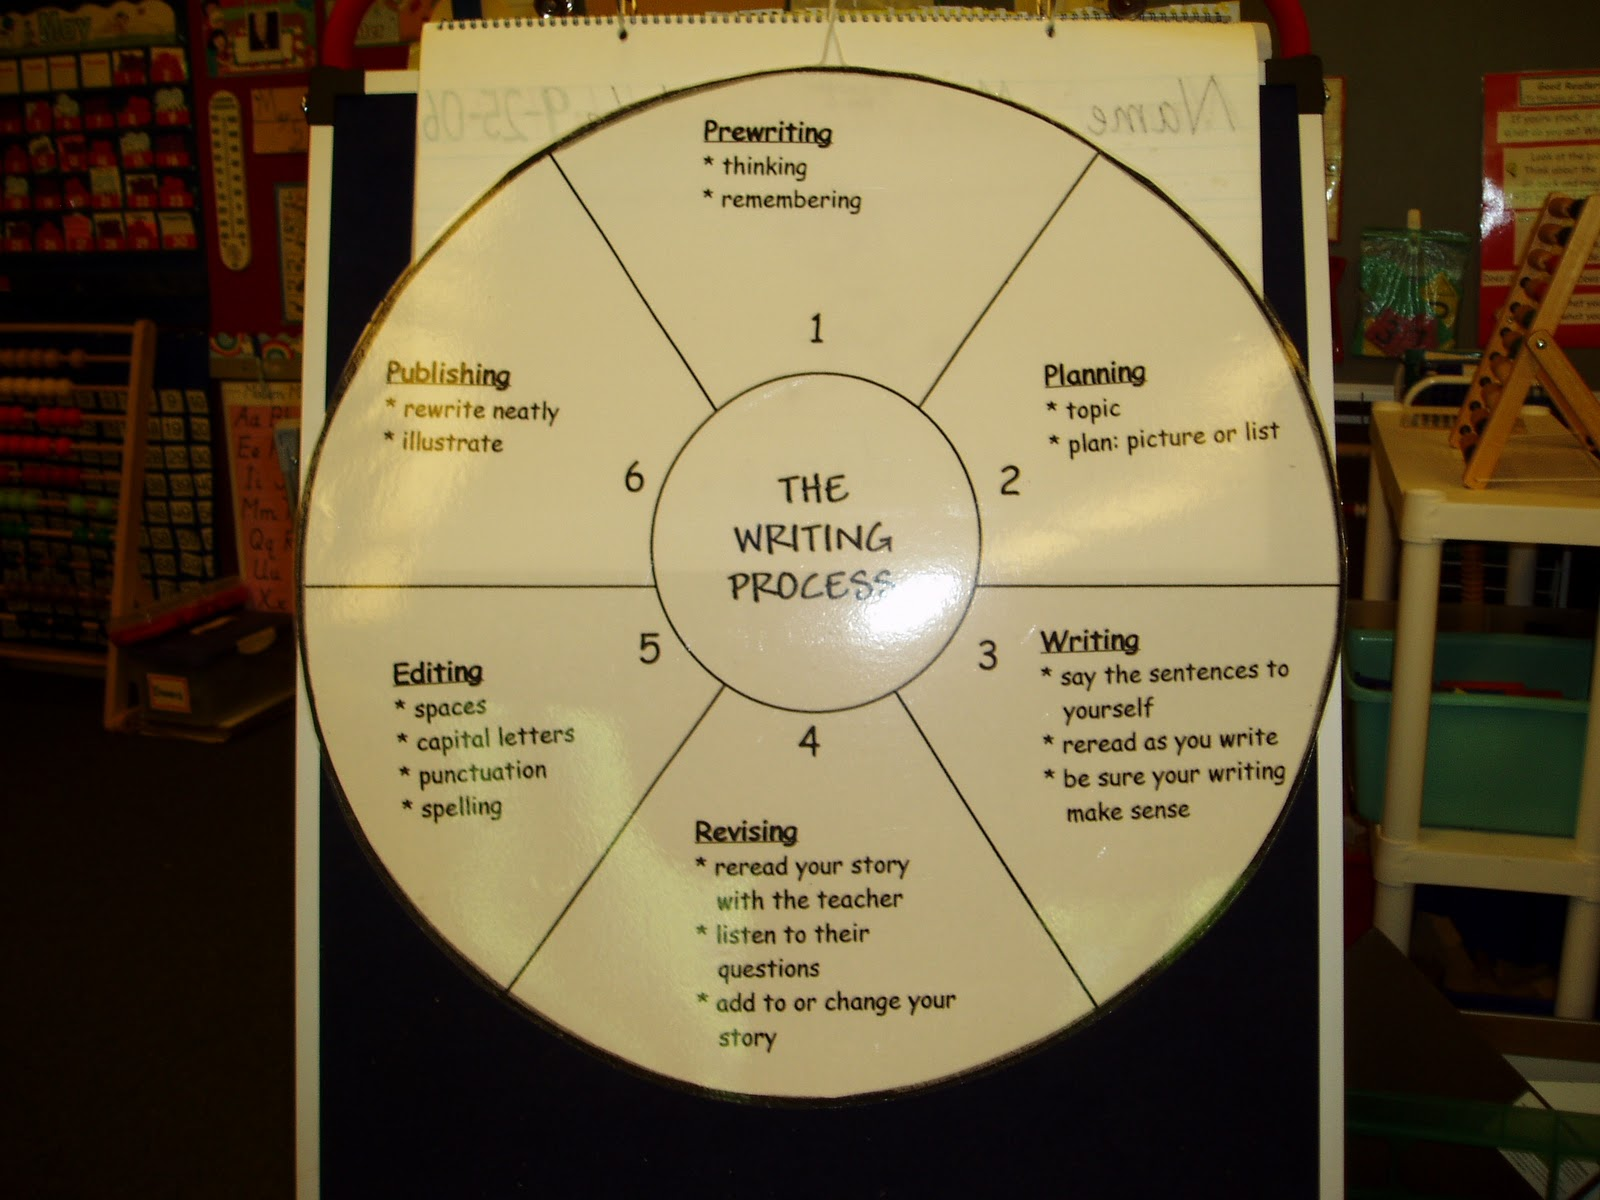 What's your writing process?